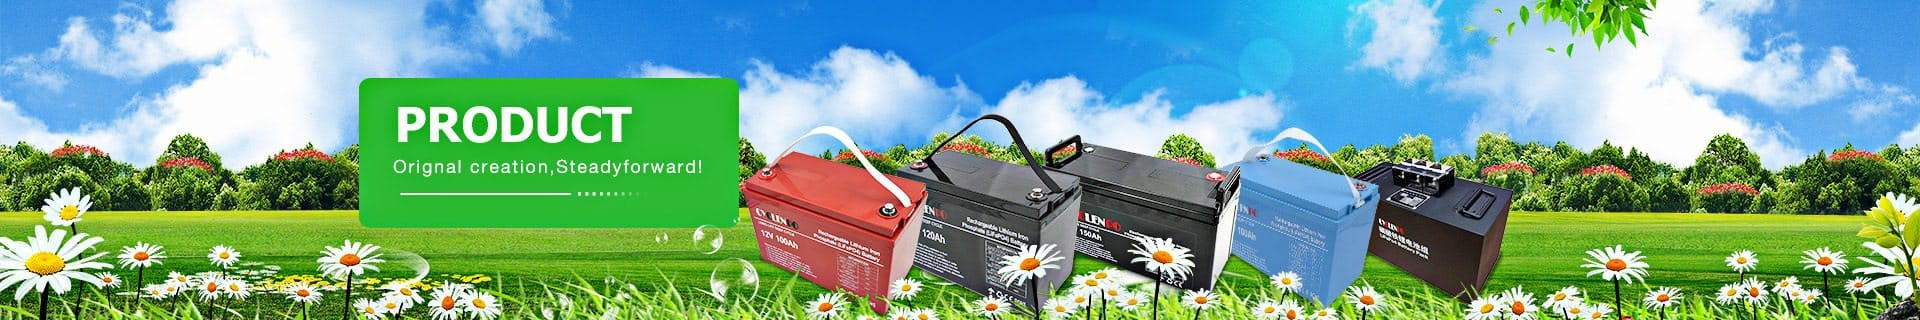 LifePO4 Battery 12v 200ah, More Than 3000 Cycle Times, Custom LifePO4 Battery